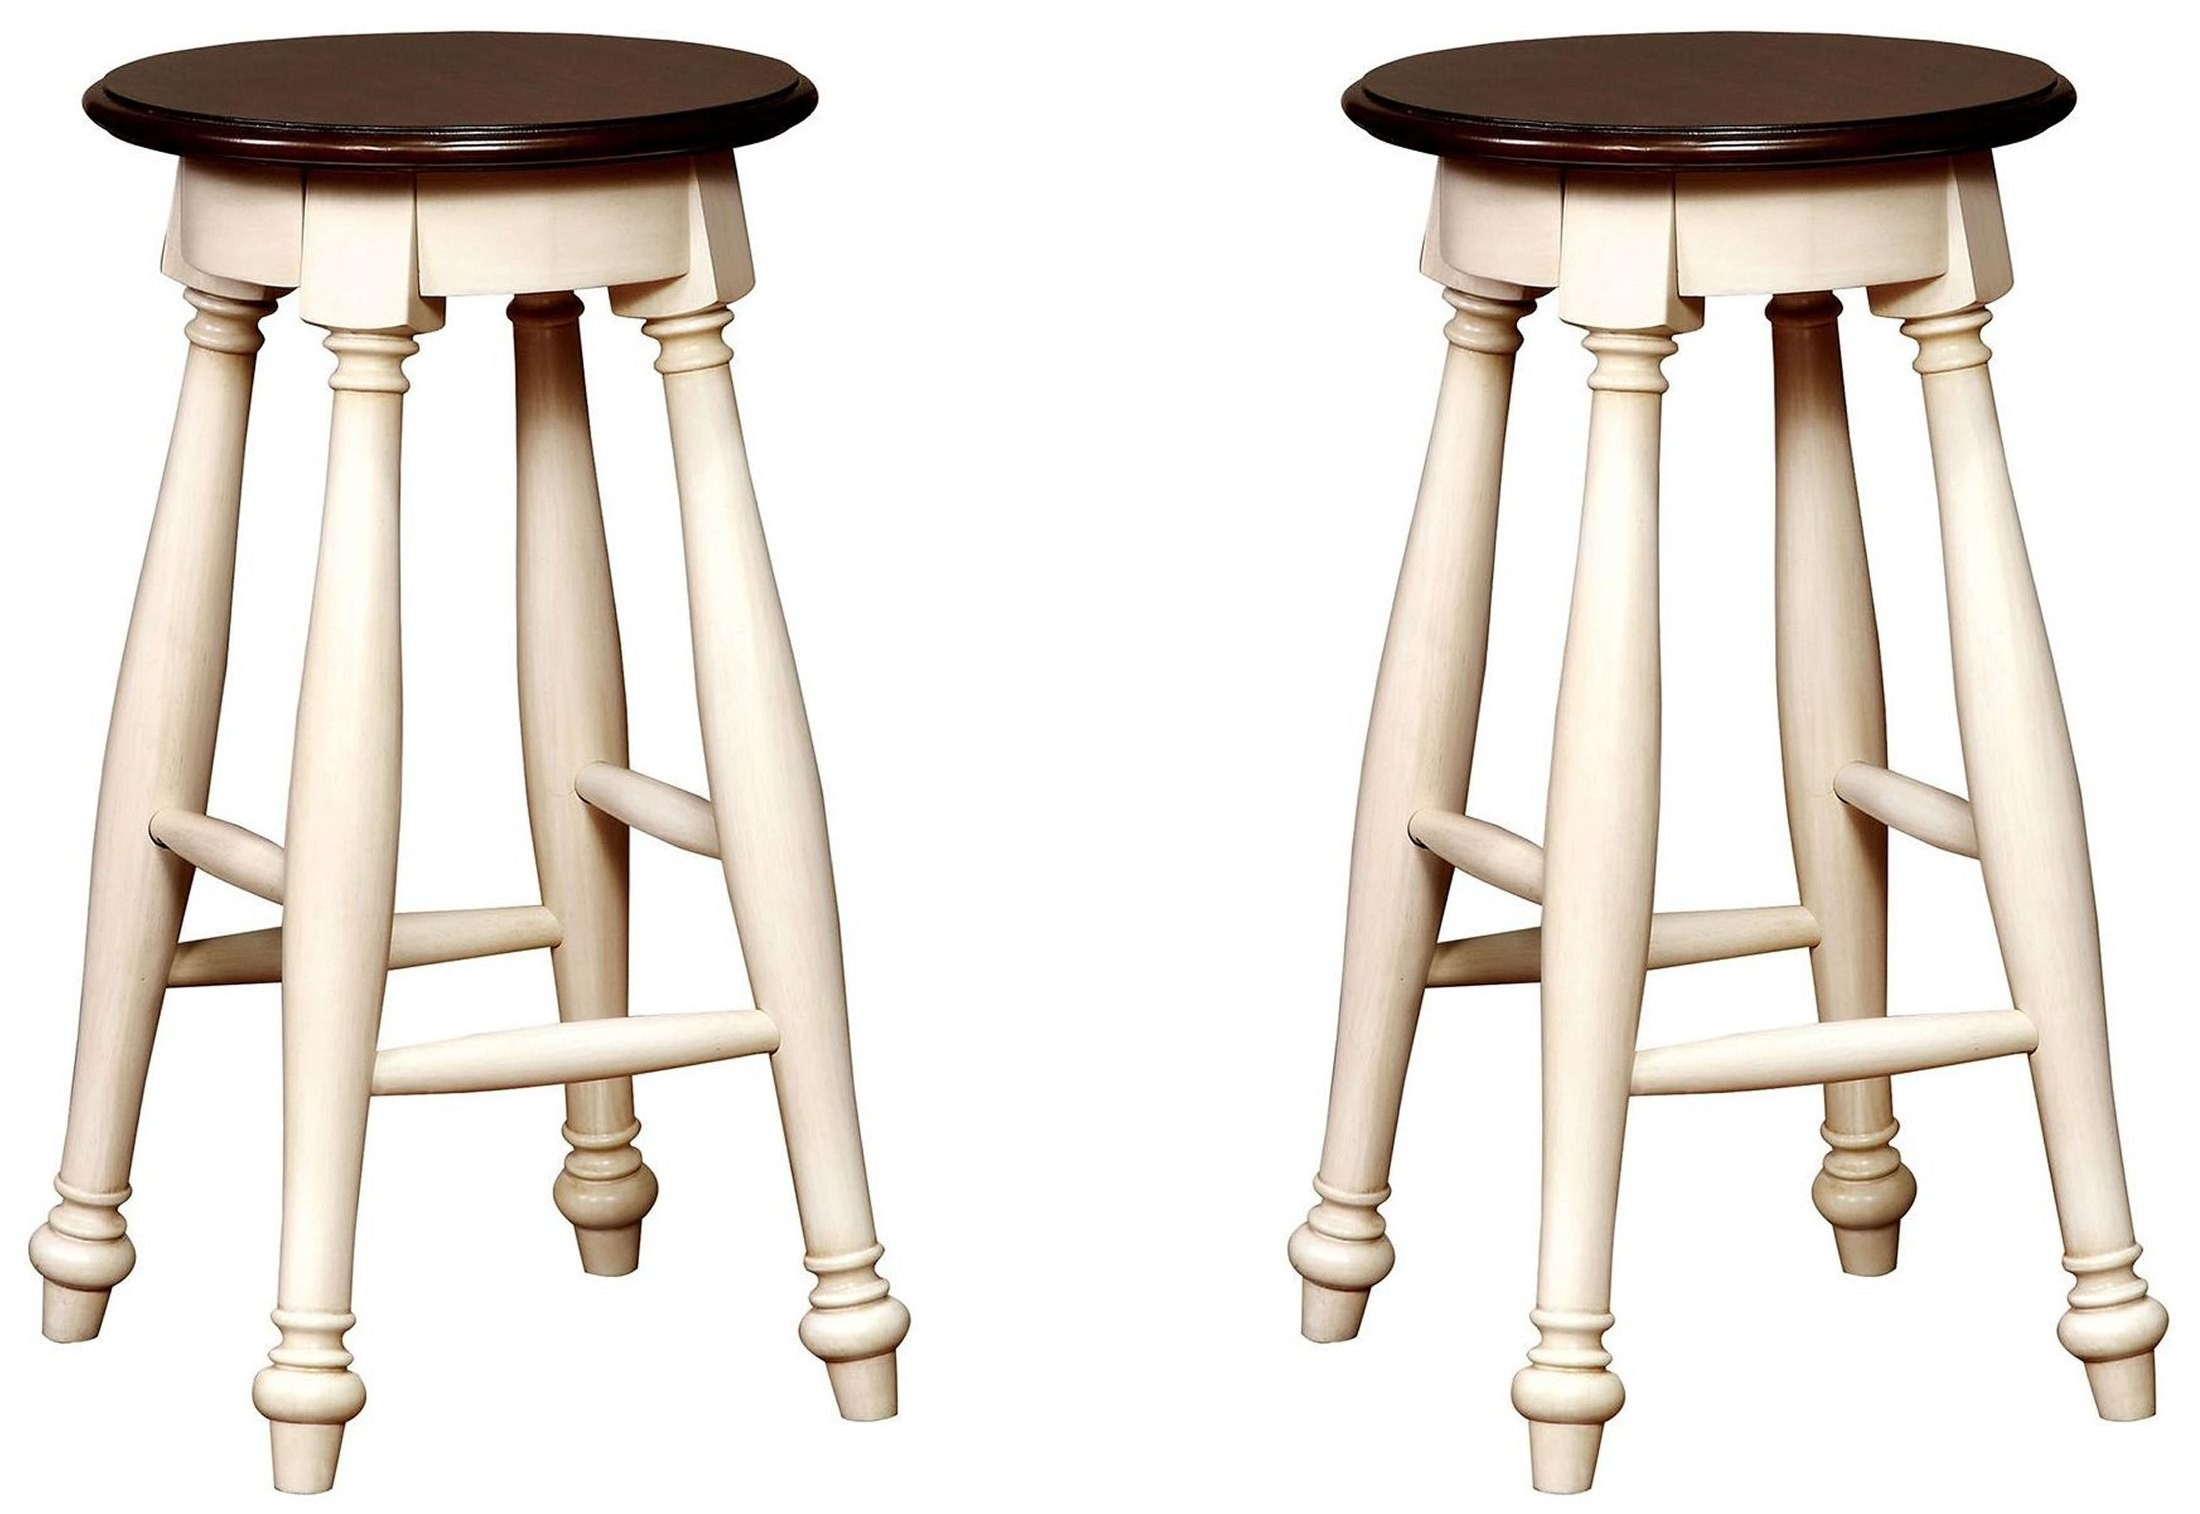 White Counter Height Chairs Sabrina Cherry And White Counter Height Stool Set Of 2 From